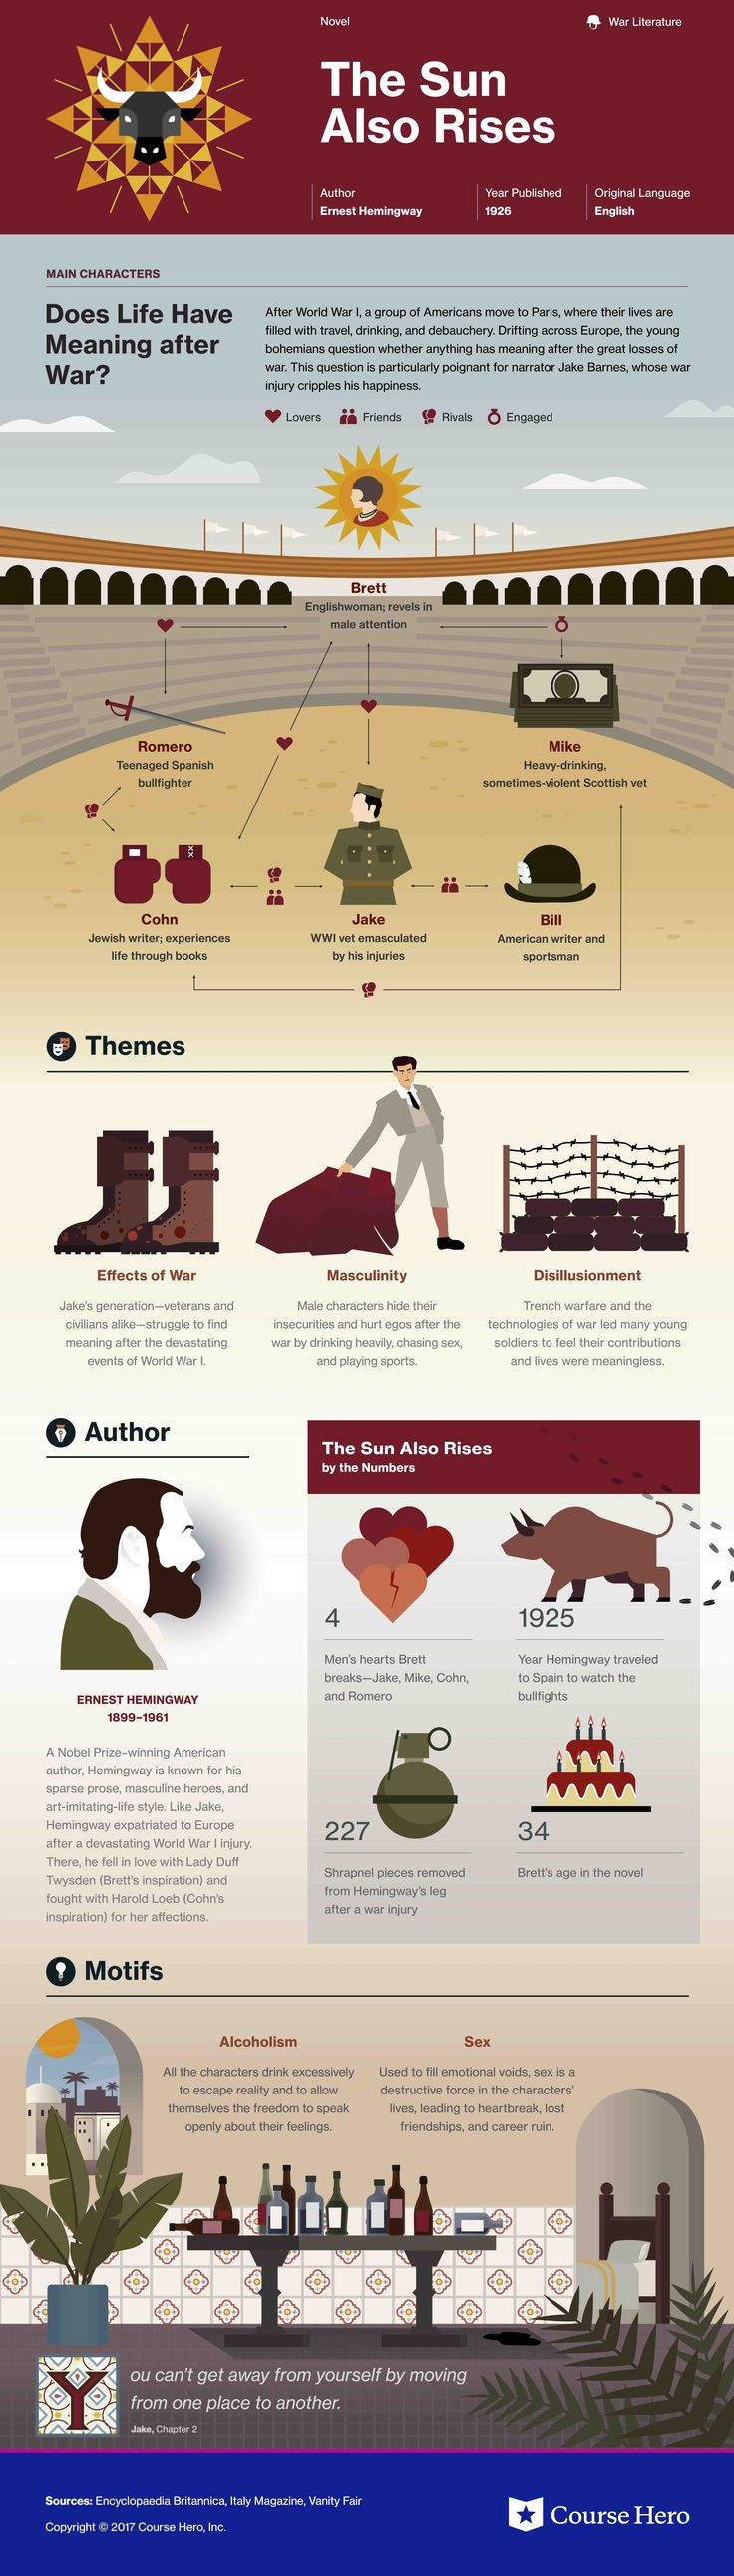 Ernest Hemingway's The Sun Also Rises Infographic | Course Hero: https://www.coursehero.com/lit/The-Sun-Also-Rises/